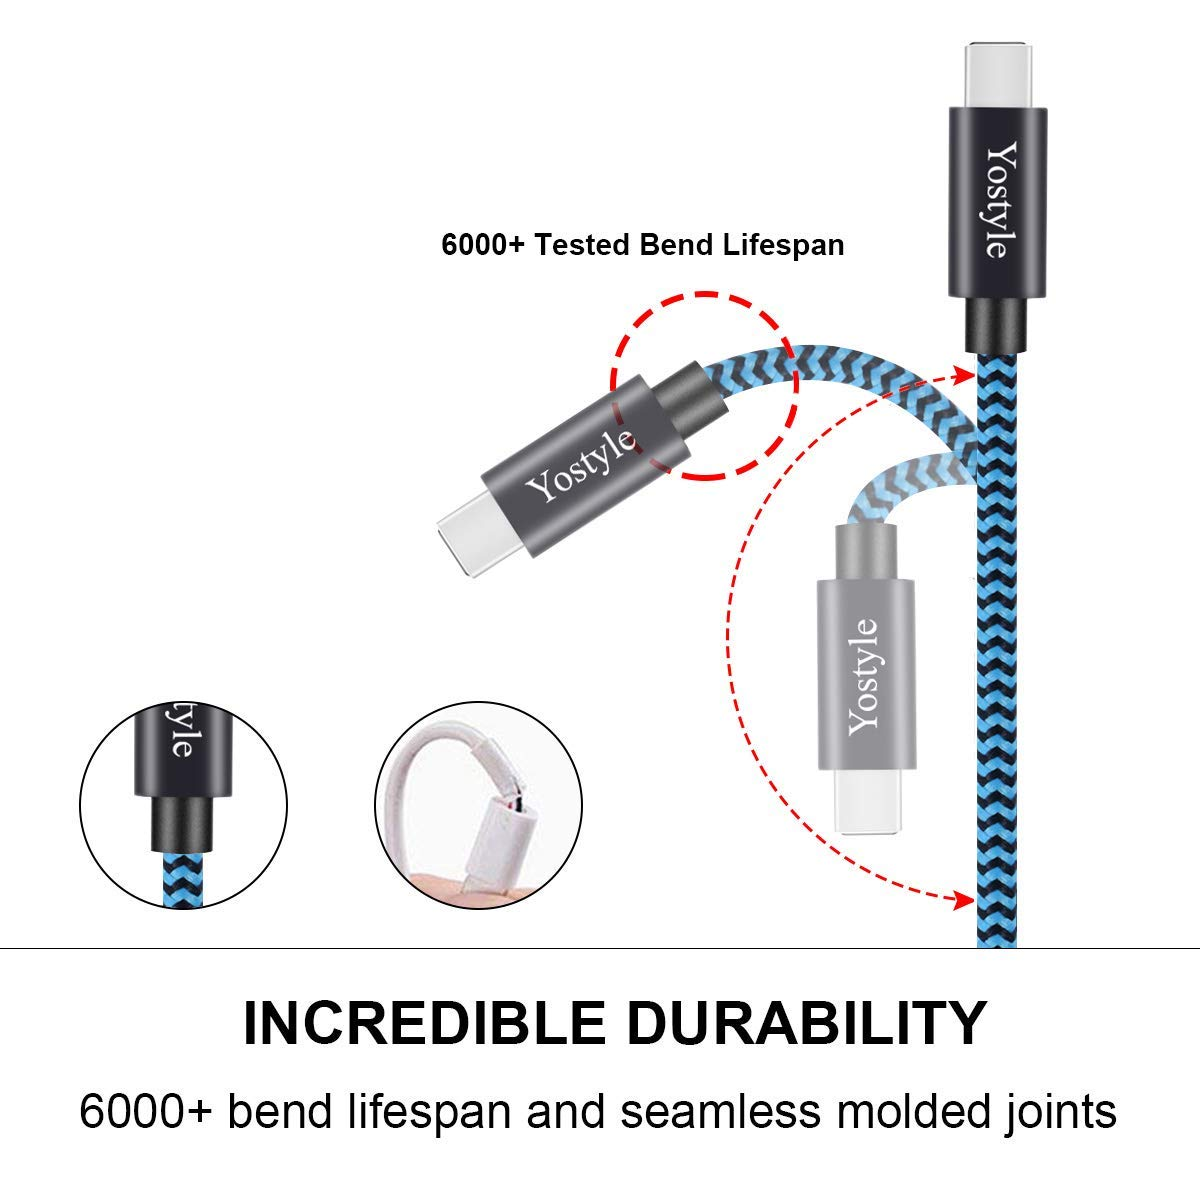 USB-C Cable, Type C Fast Charge High Speed Sync Nylon Braided Cable for Samsung Galaxy S9/S8+, Note 8, Nintendo Switch, Sony Xperia XZ, Google Pixel, HTC 10/U11, OnePlus 5T, Huawei P9 [2 Pack/2M]